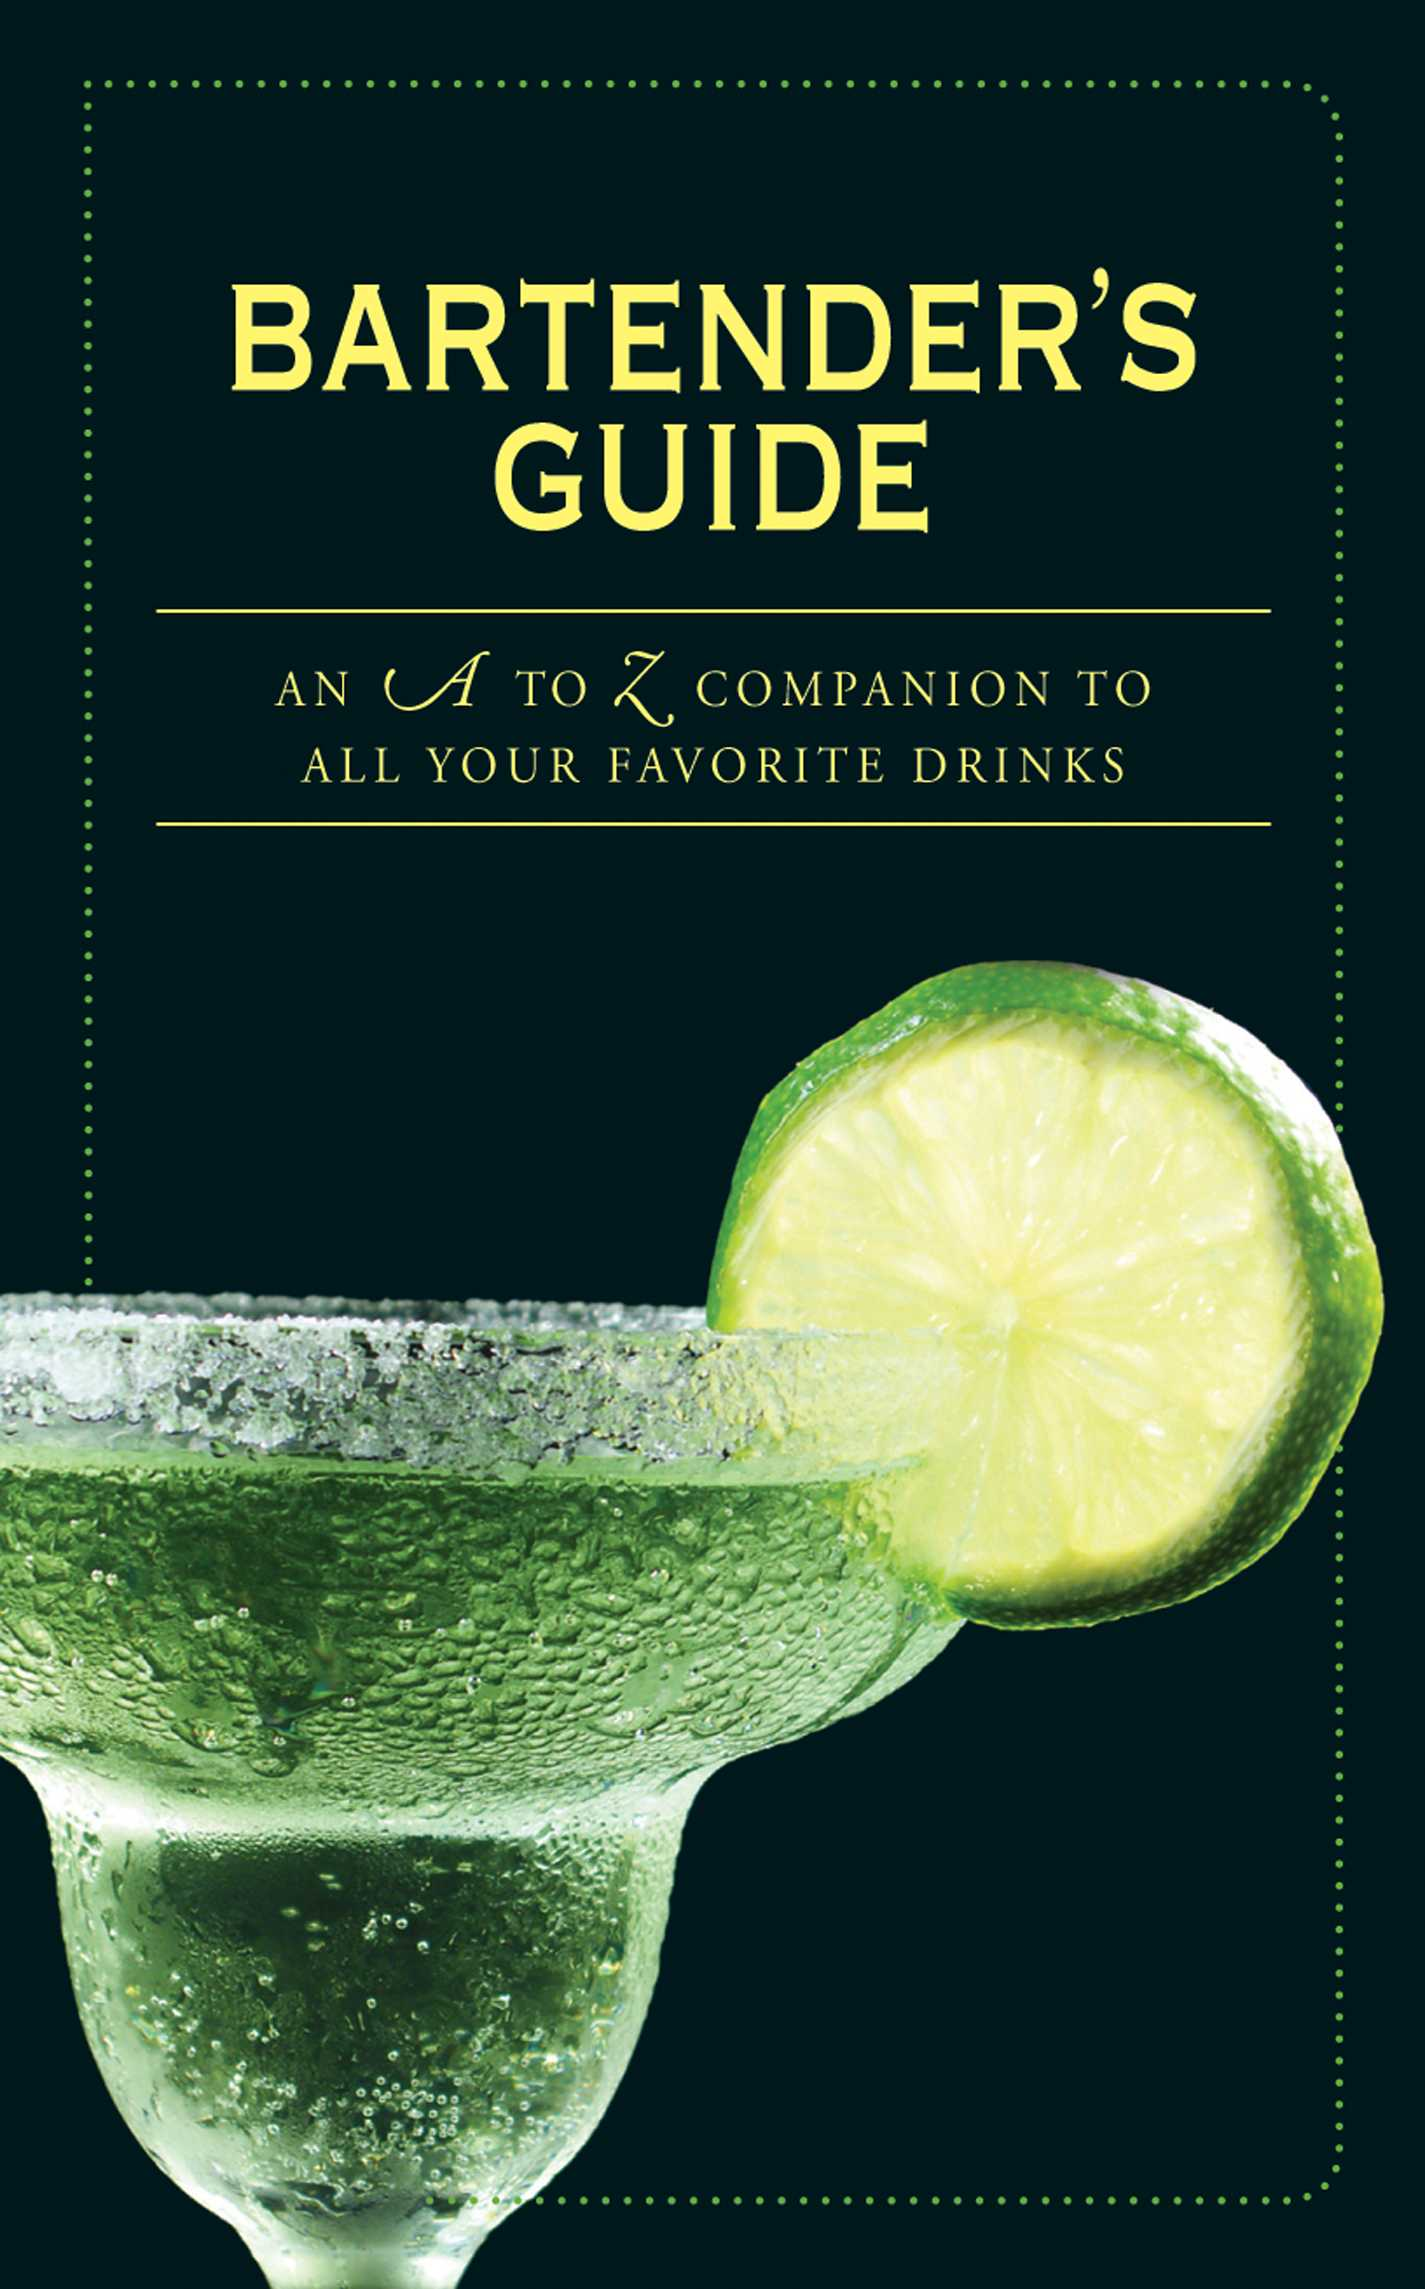 Bartender's Guide: An A to Z Companion to All Your Favorite Drinks (Paperback)